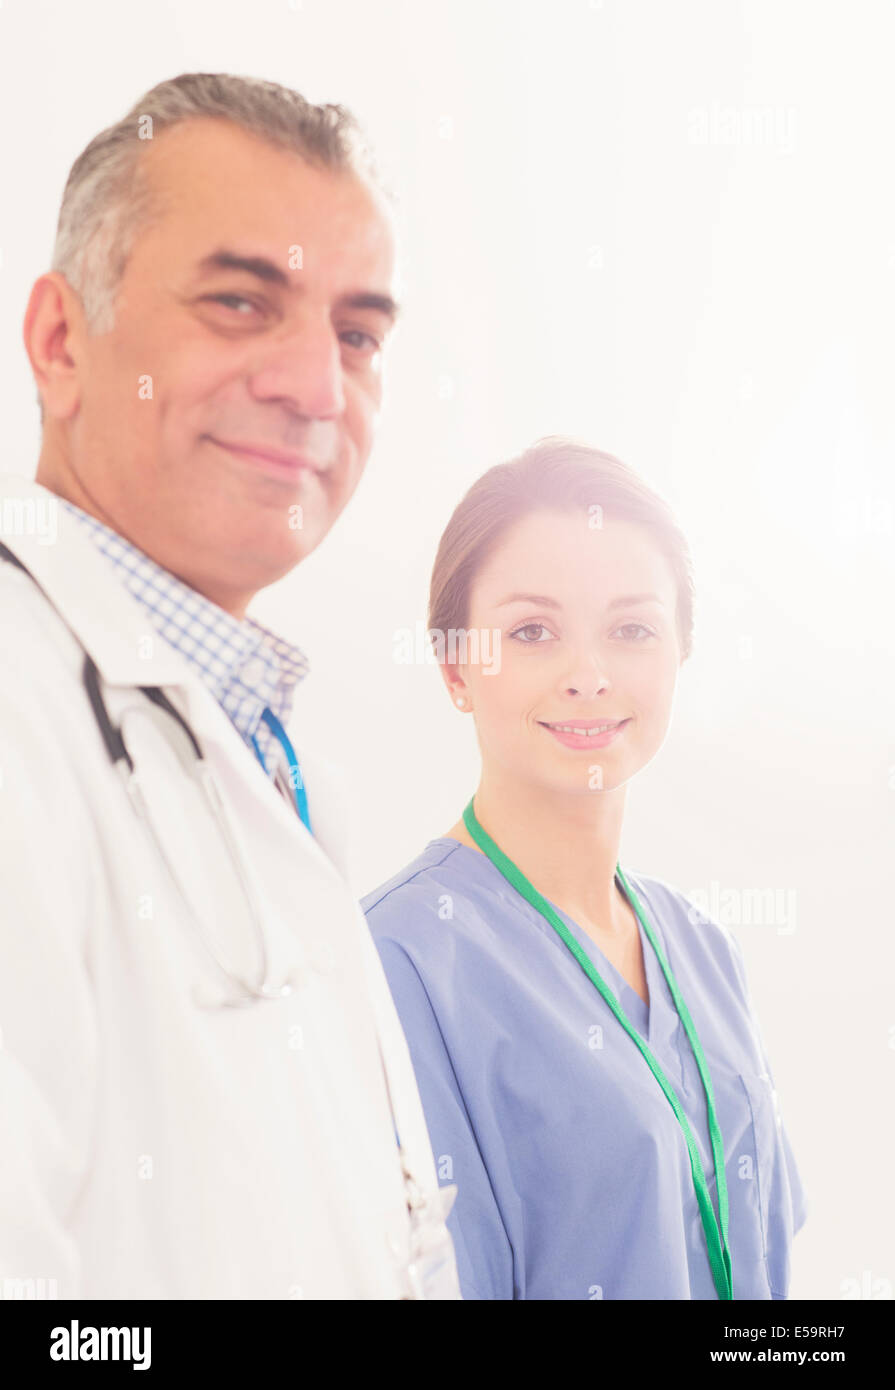 Portrait of smiling doctor and nurse Photo Stock